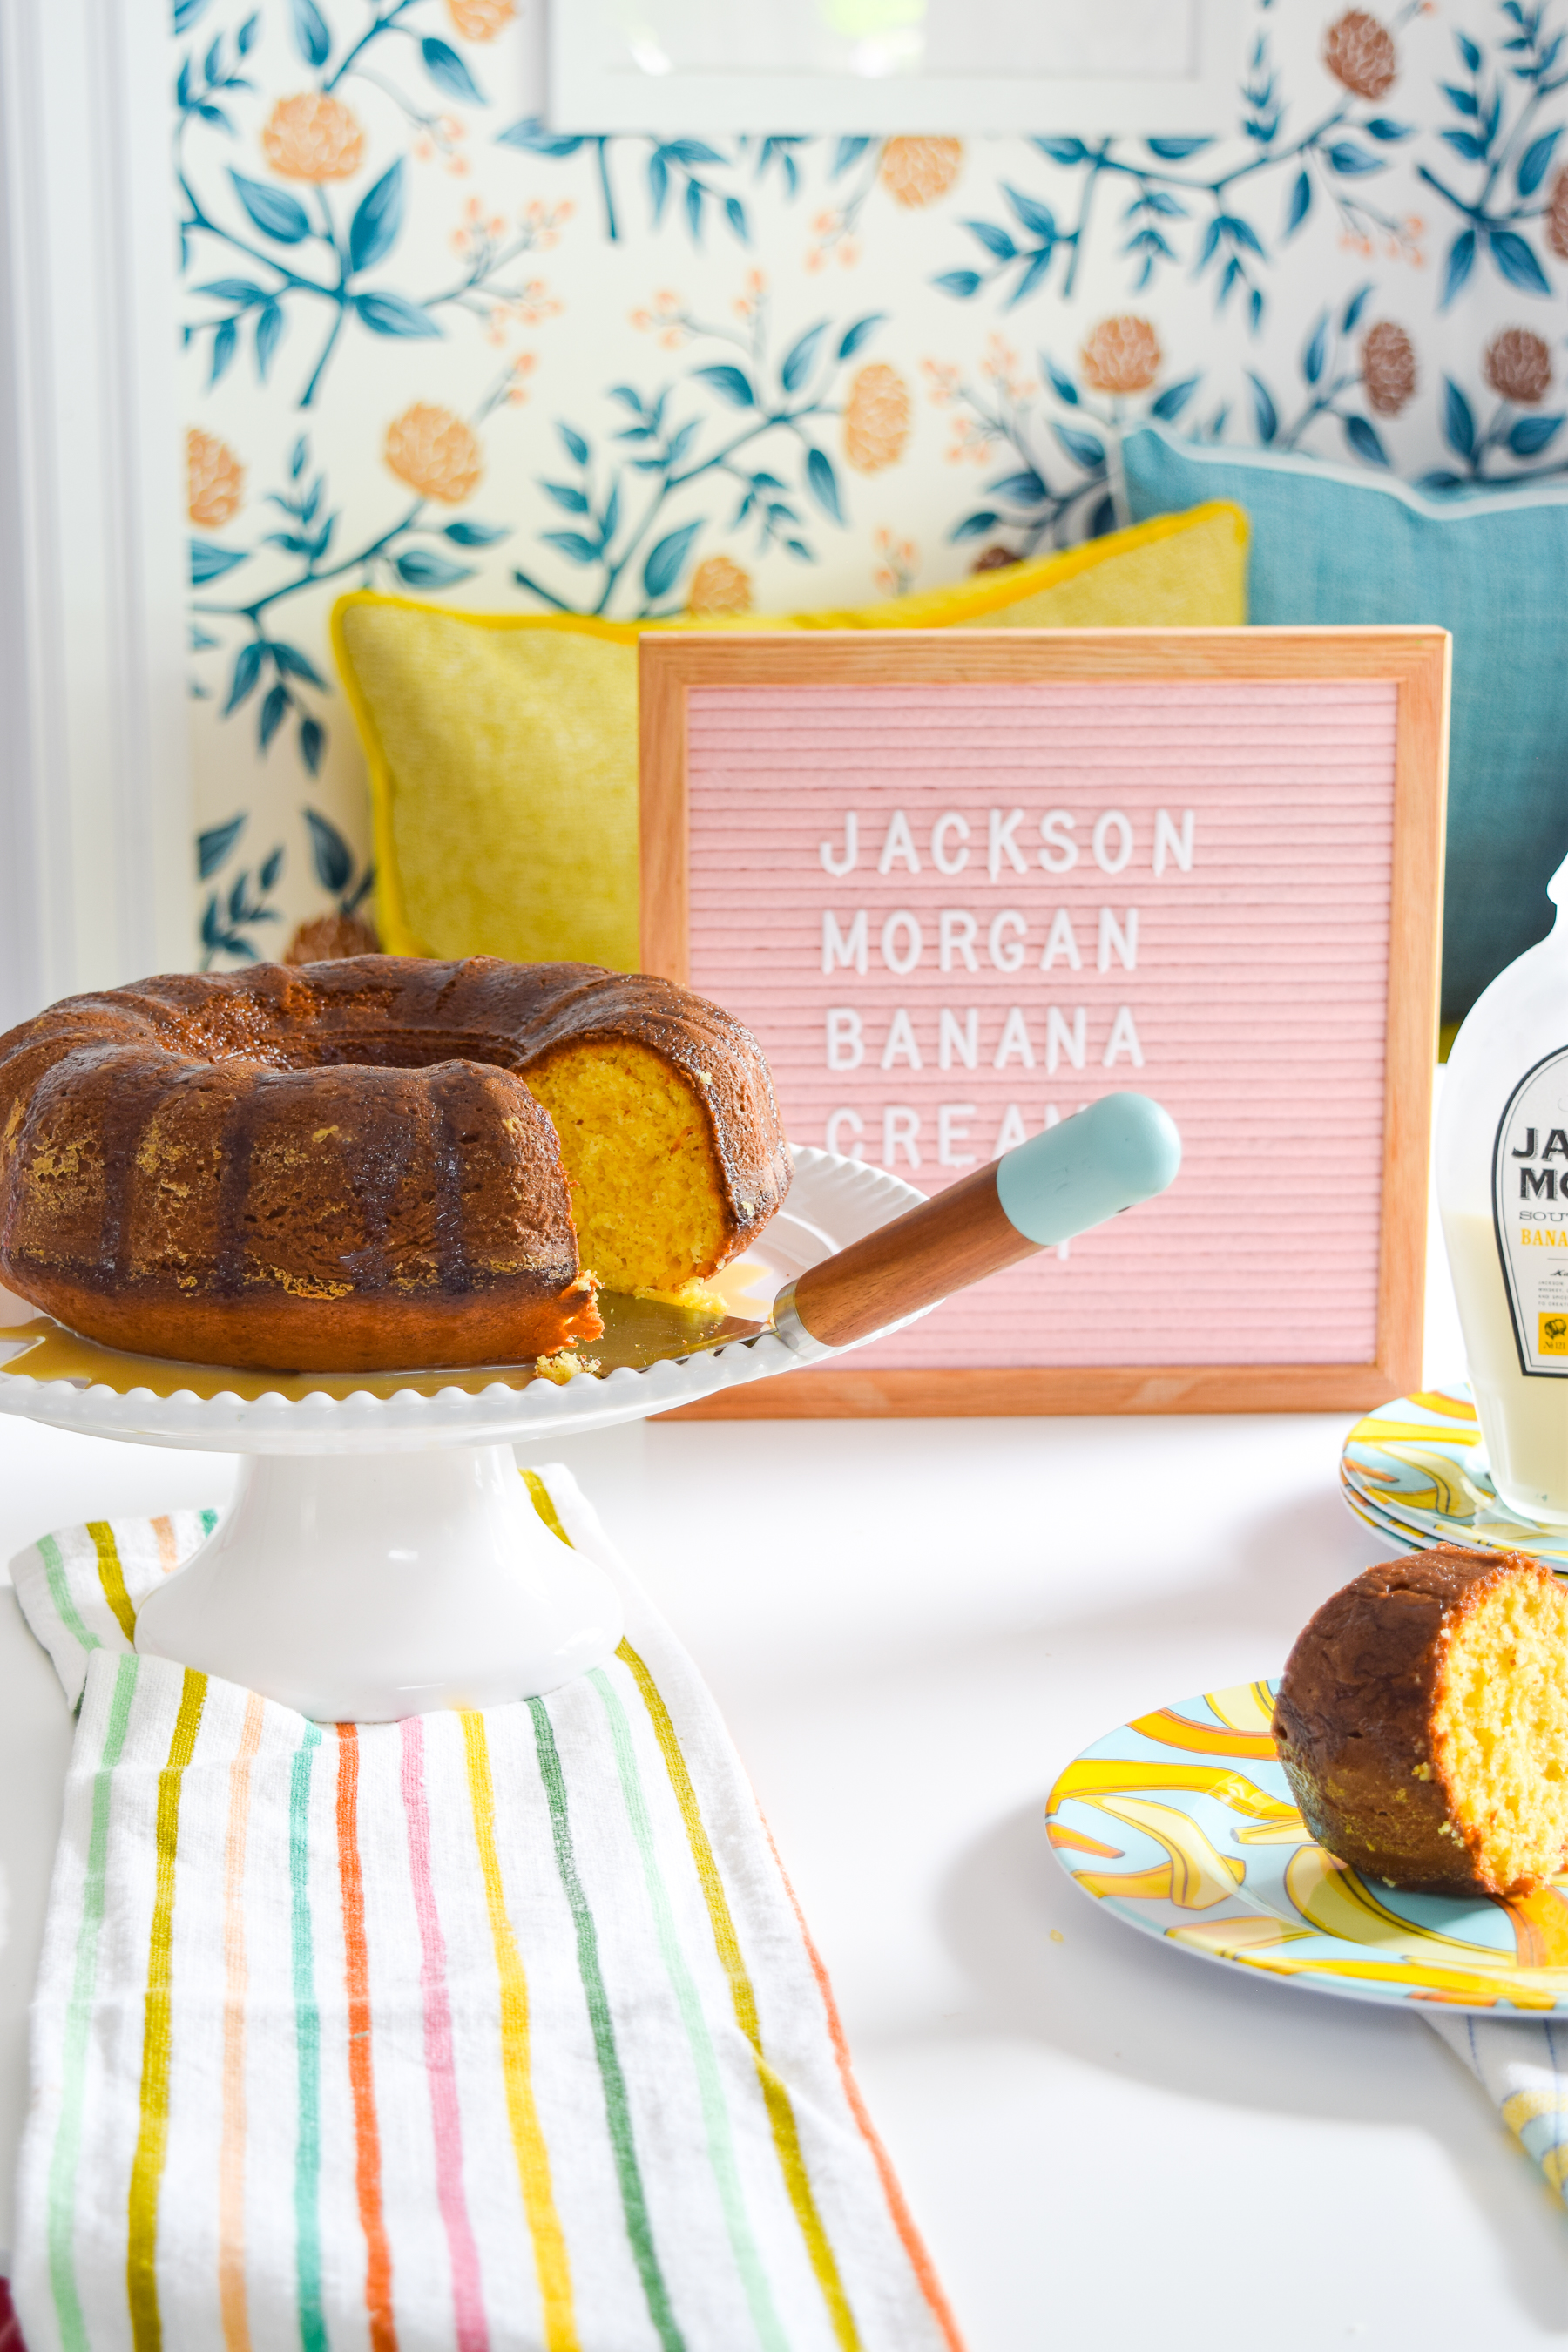 A Whiskey Banana Cream Bundt Cake is easier to make than you'd think (cake mix + Jackson Morgan Banana Pudding Cream), and tastes like creamy banana pudding goodness.